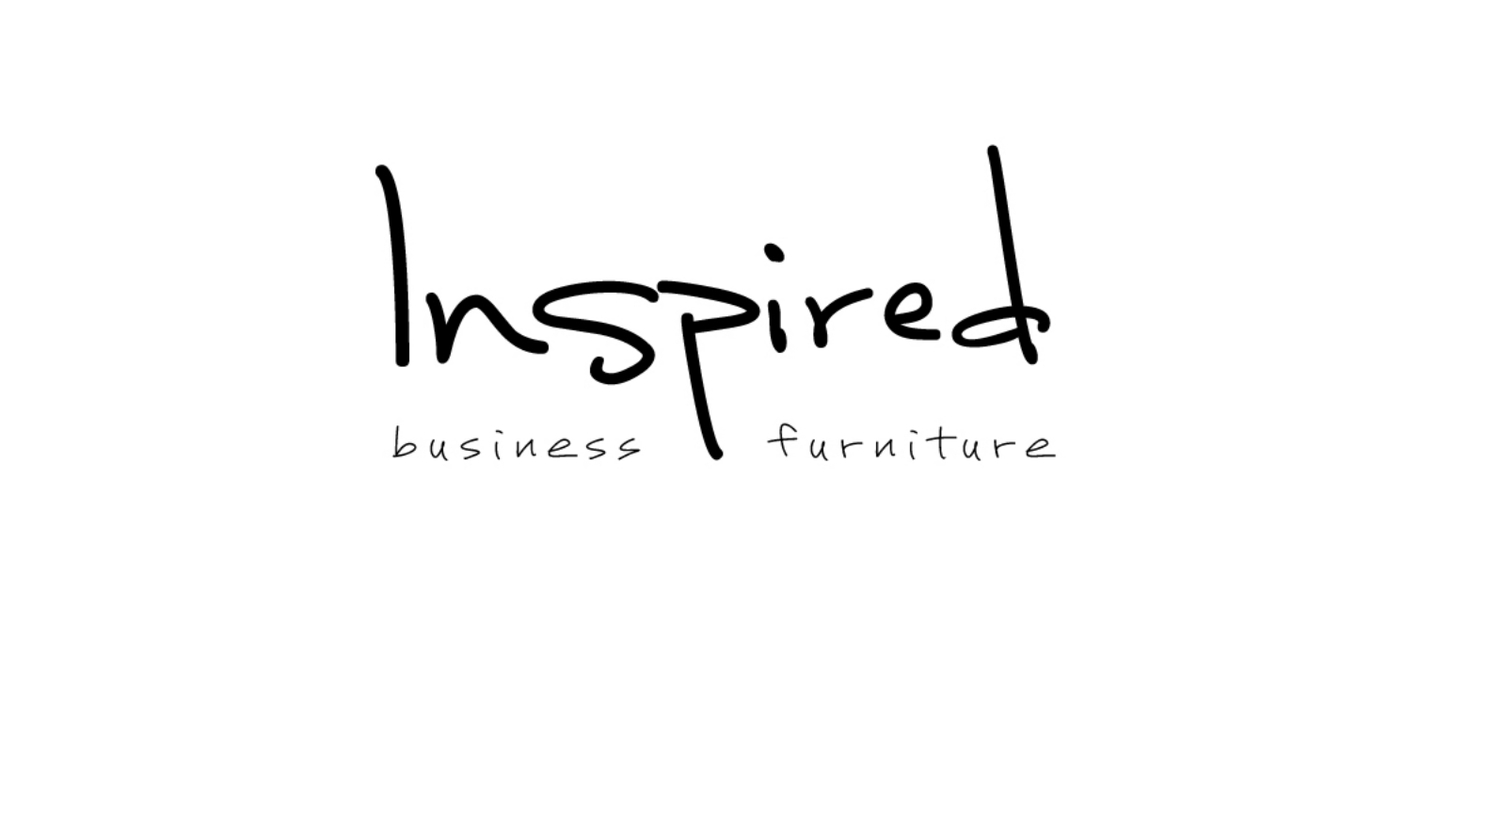 Inspired Business Furniture